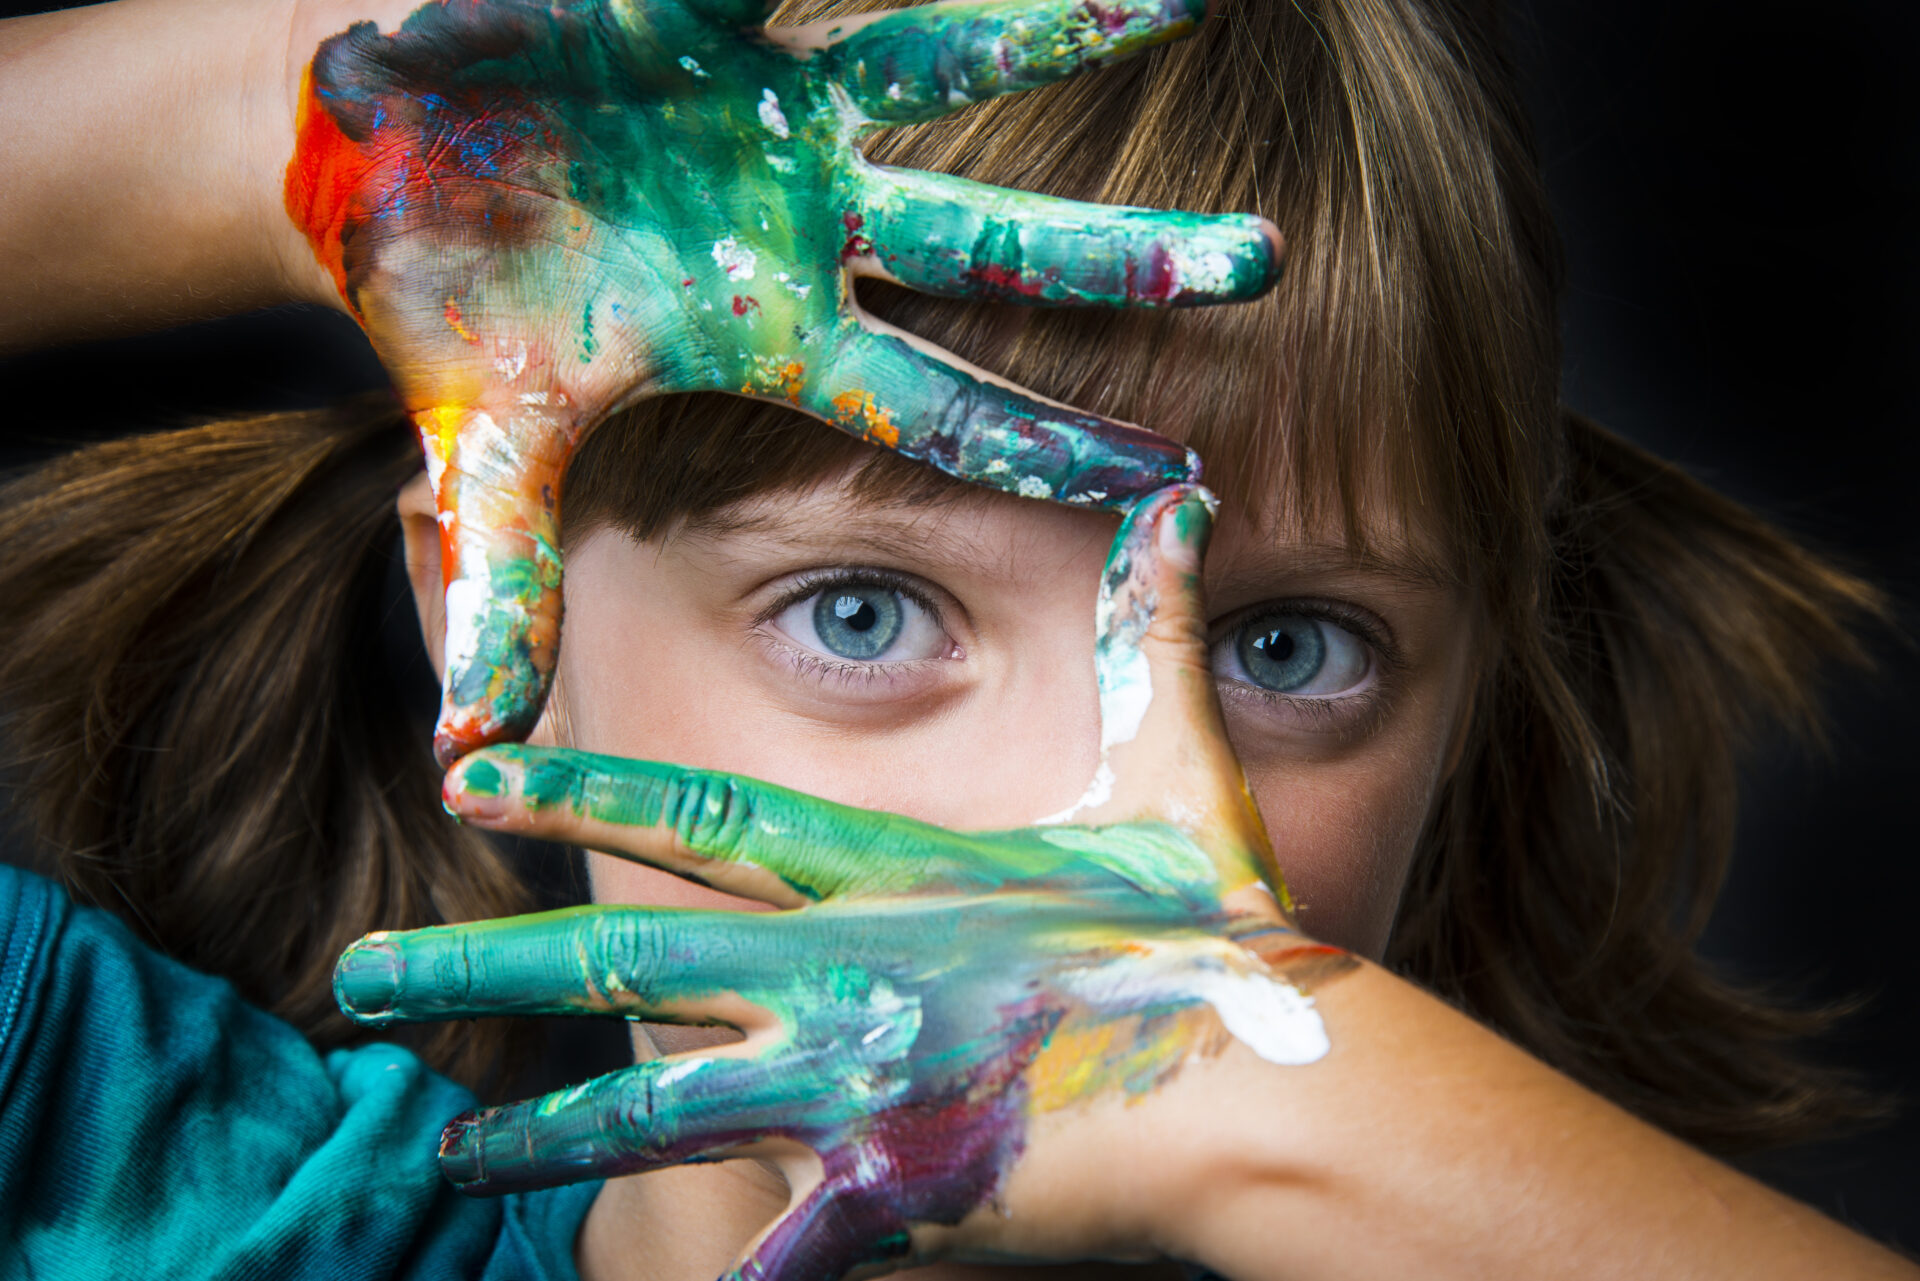 child being creative with paint on her hands.